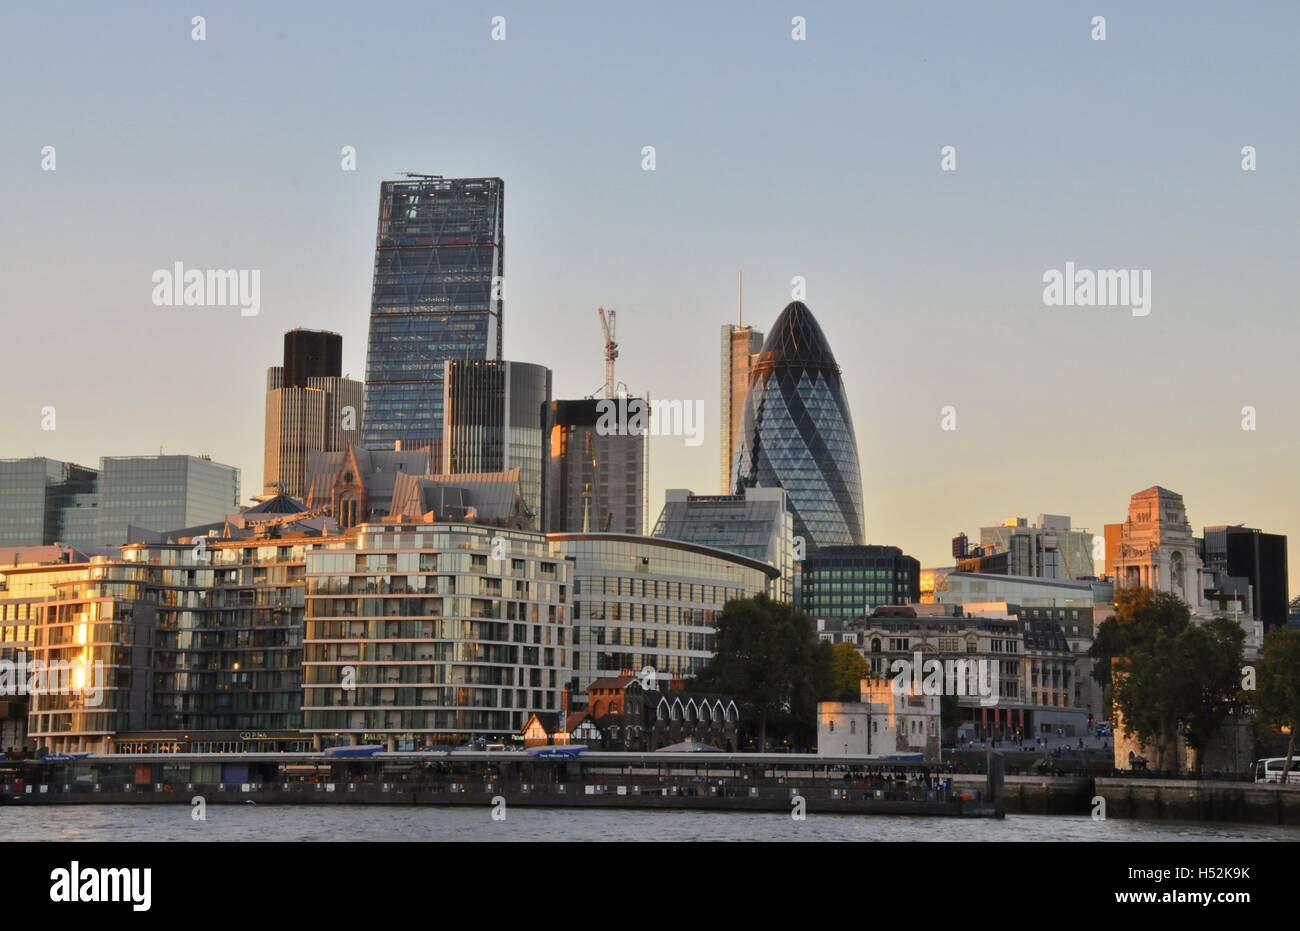 London's financial center, The City. - Stock Image